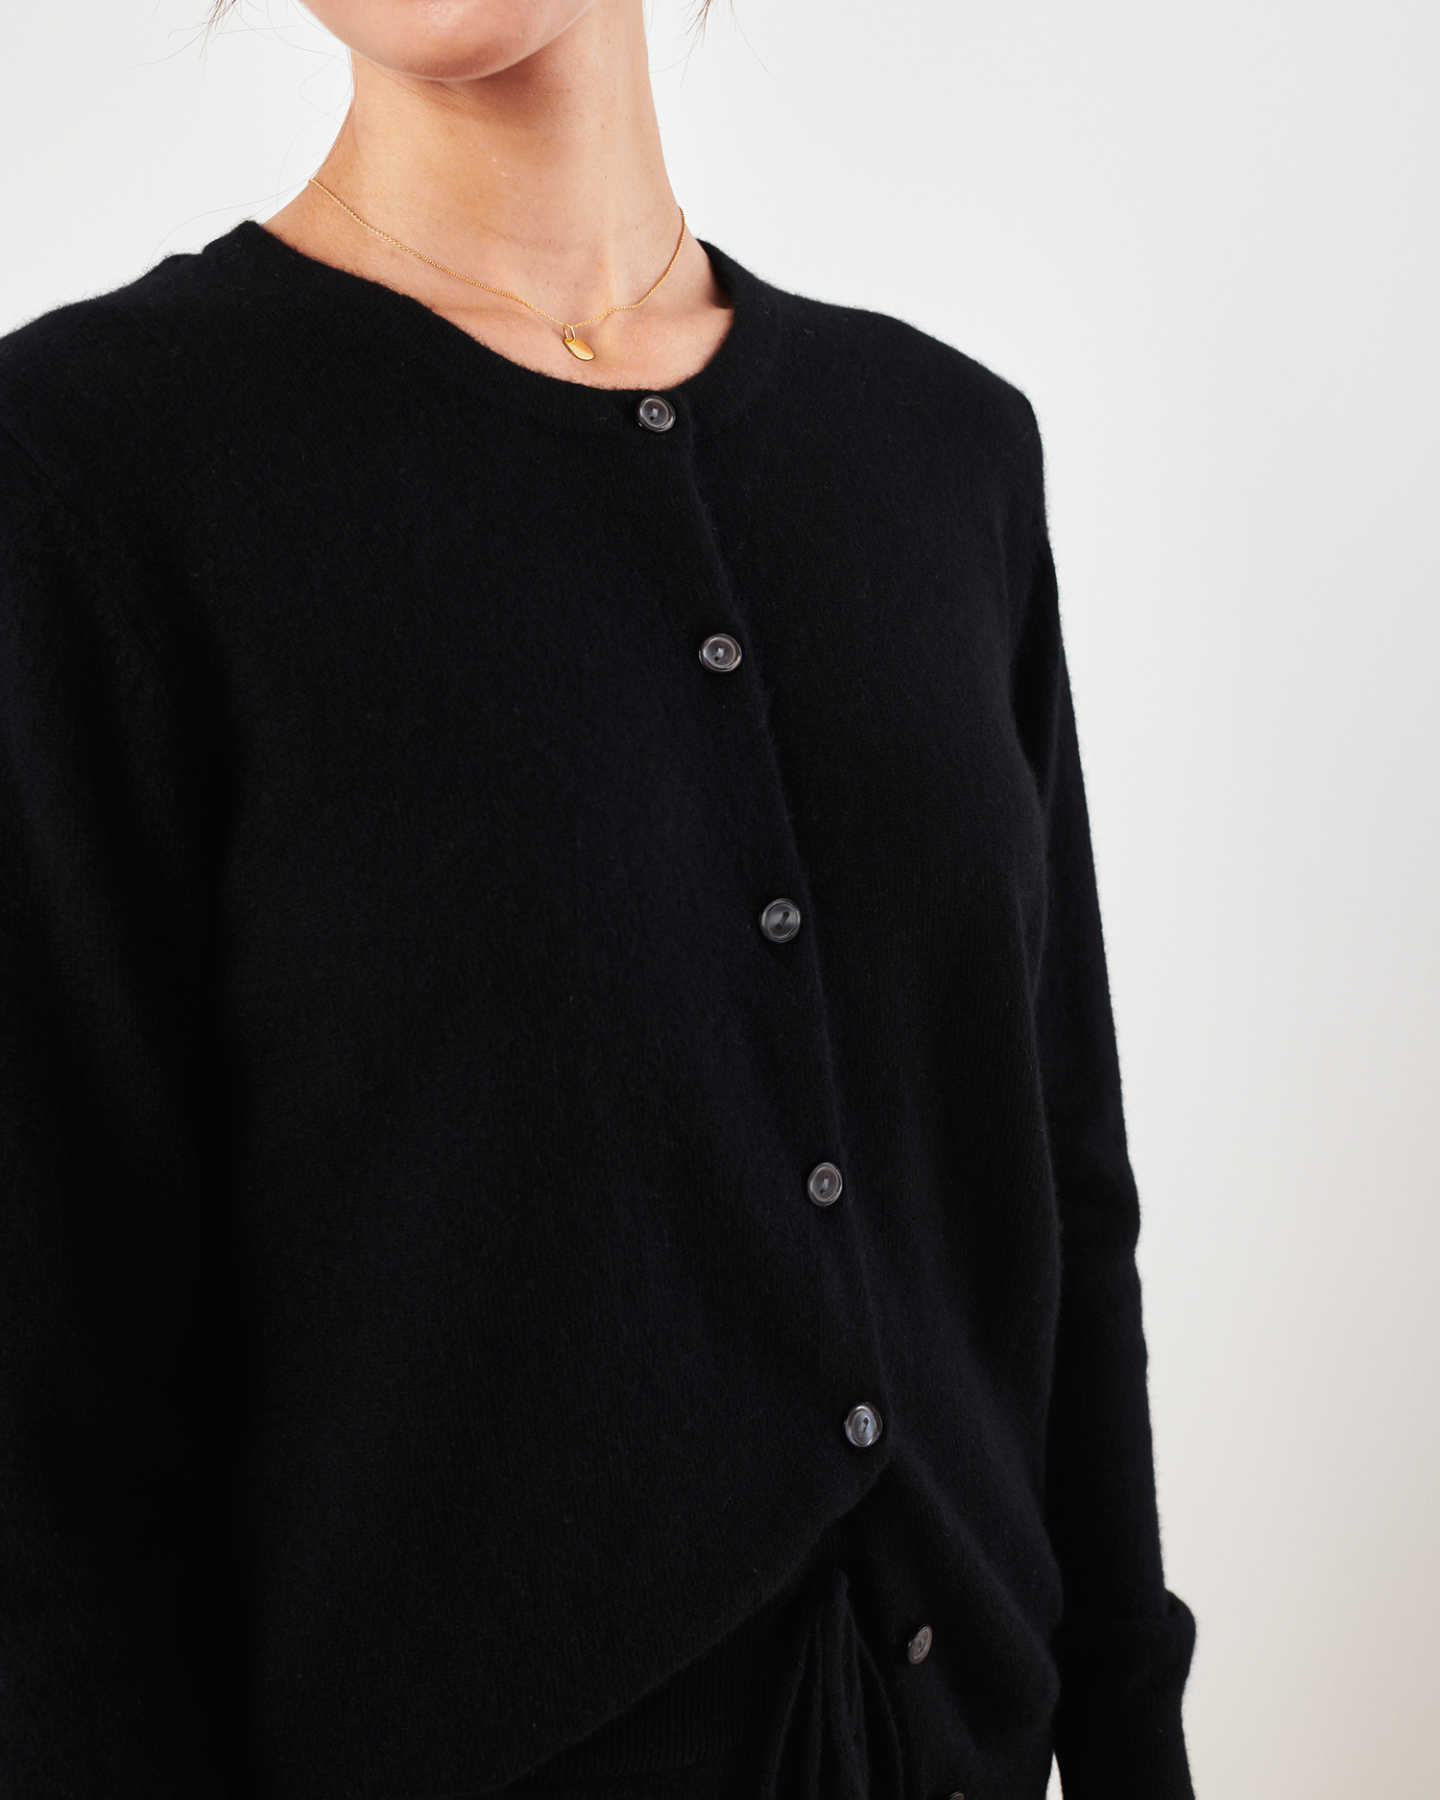 Woman wearing black cashmere cardigan sweater and black cashmere sweatpants zoomed